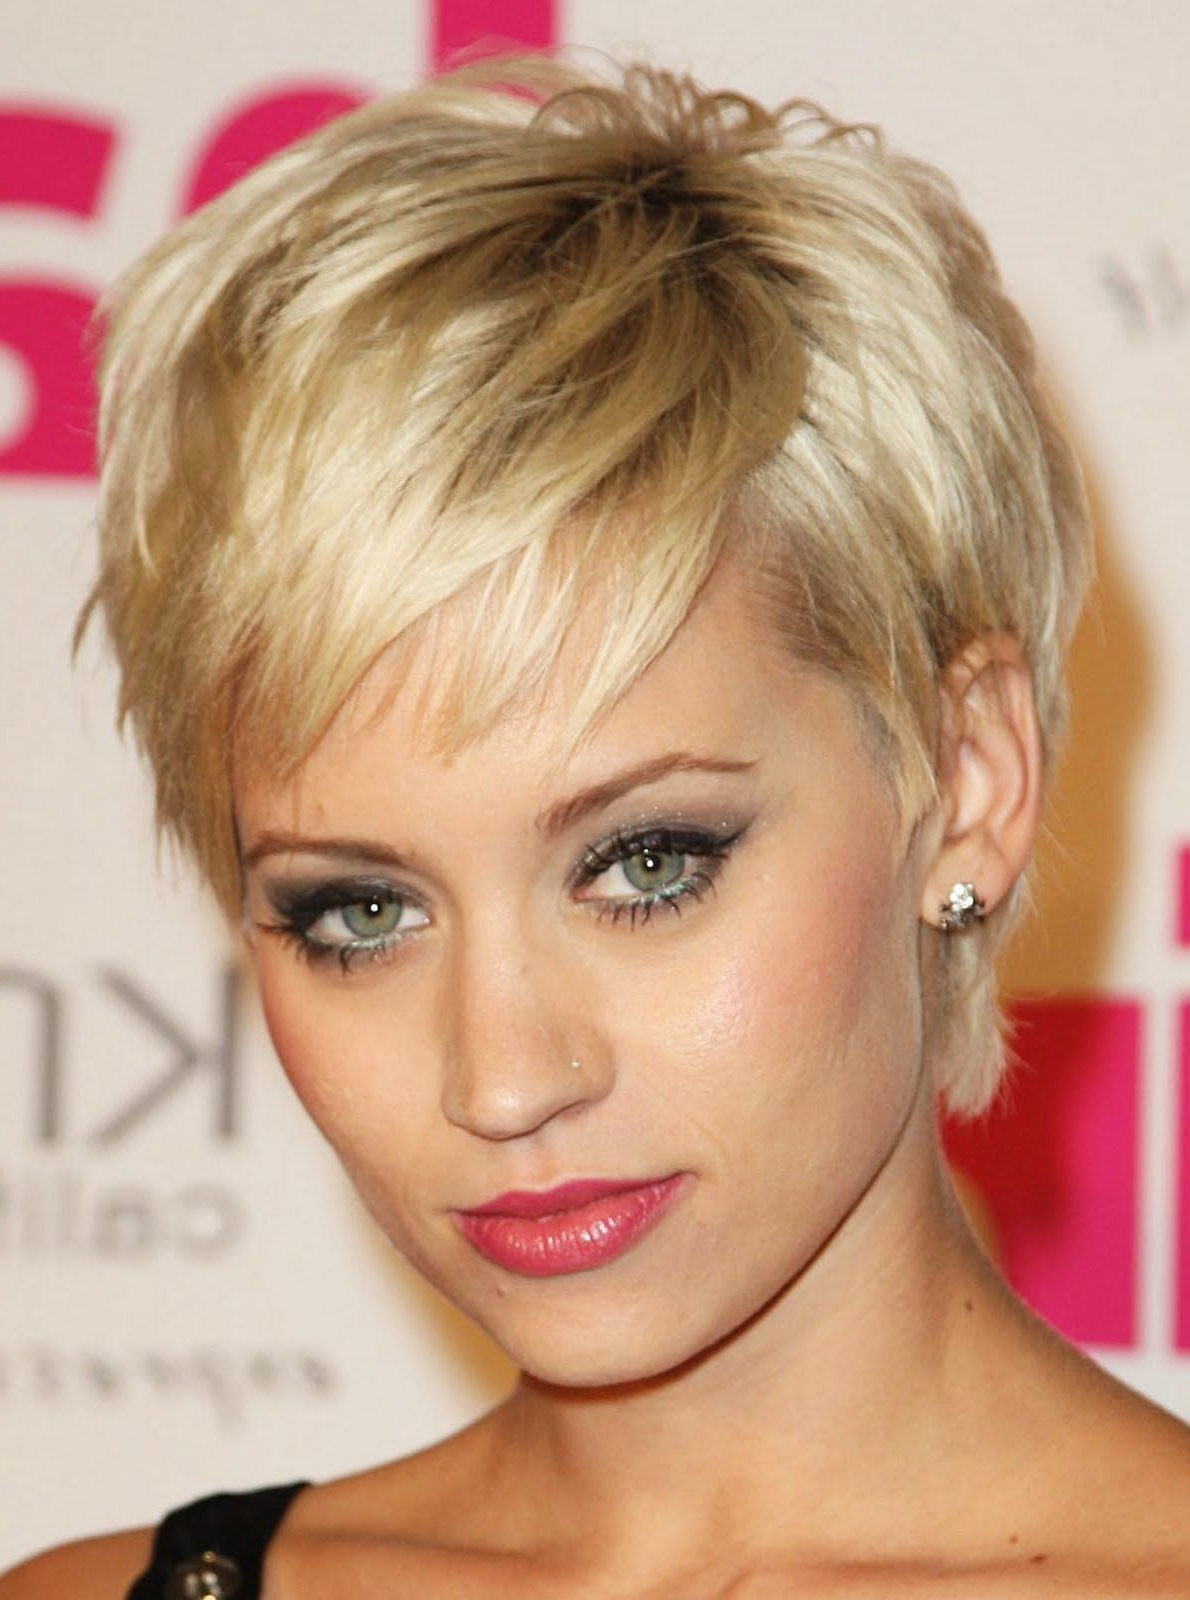 Short Hairstyles For Oval Faces | Hair Cut | Pinterest | Short Hair Inside Short Hairstyles For Thick Hair Long Face (View 3 of 25)